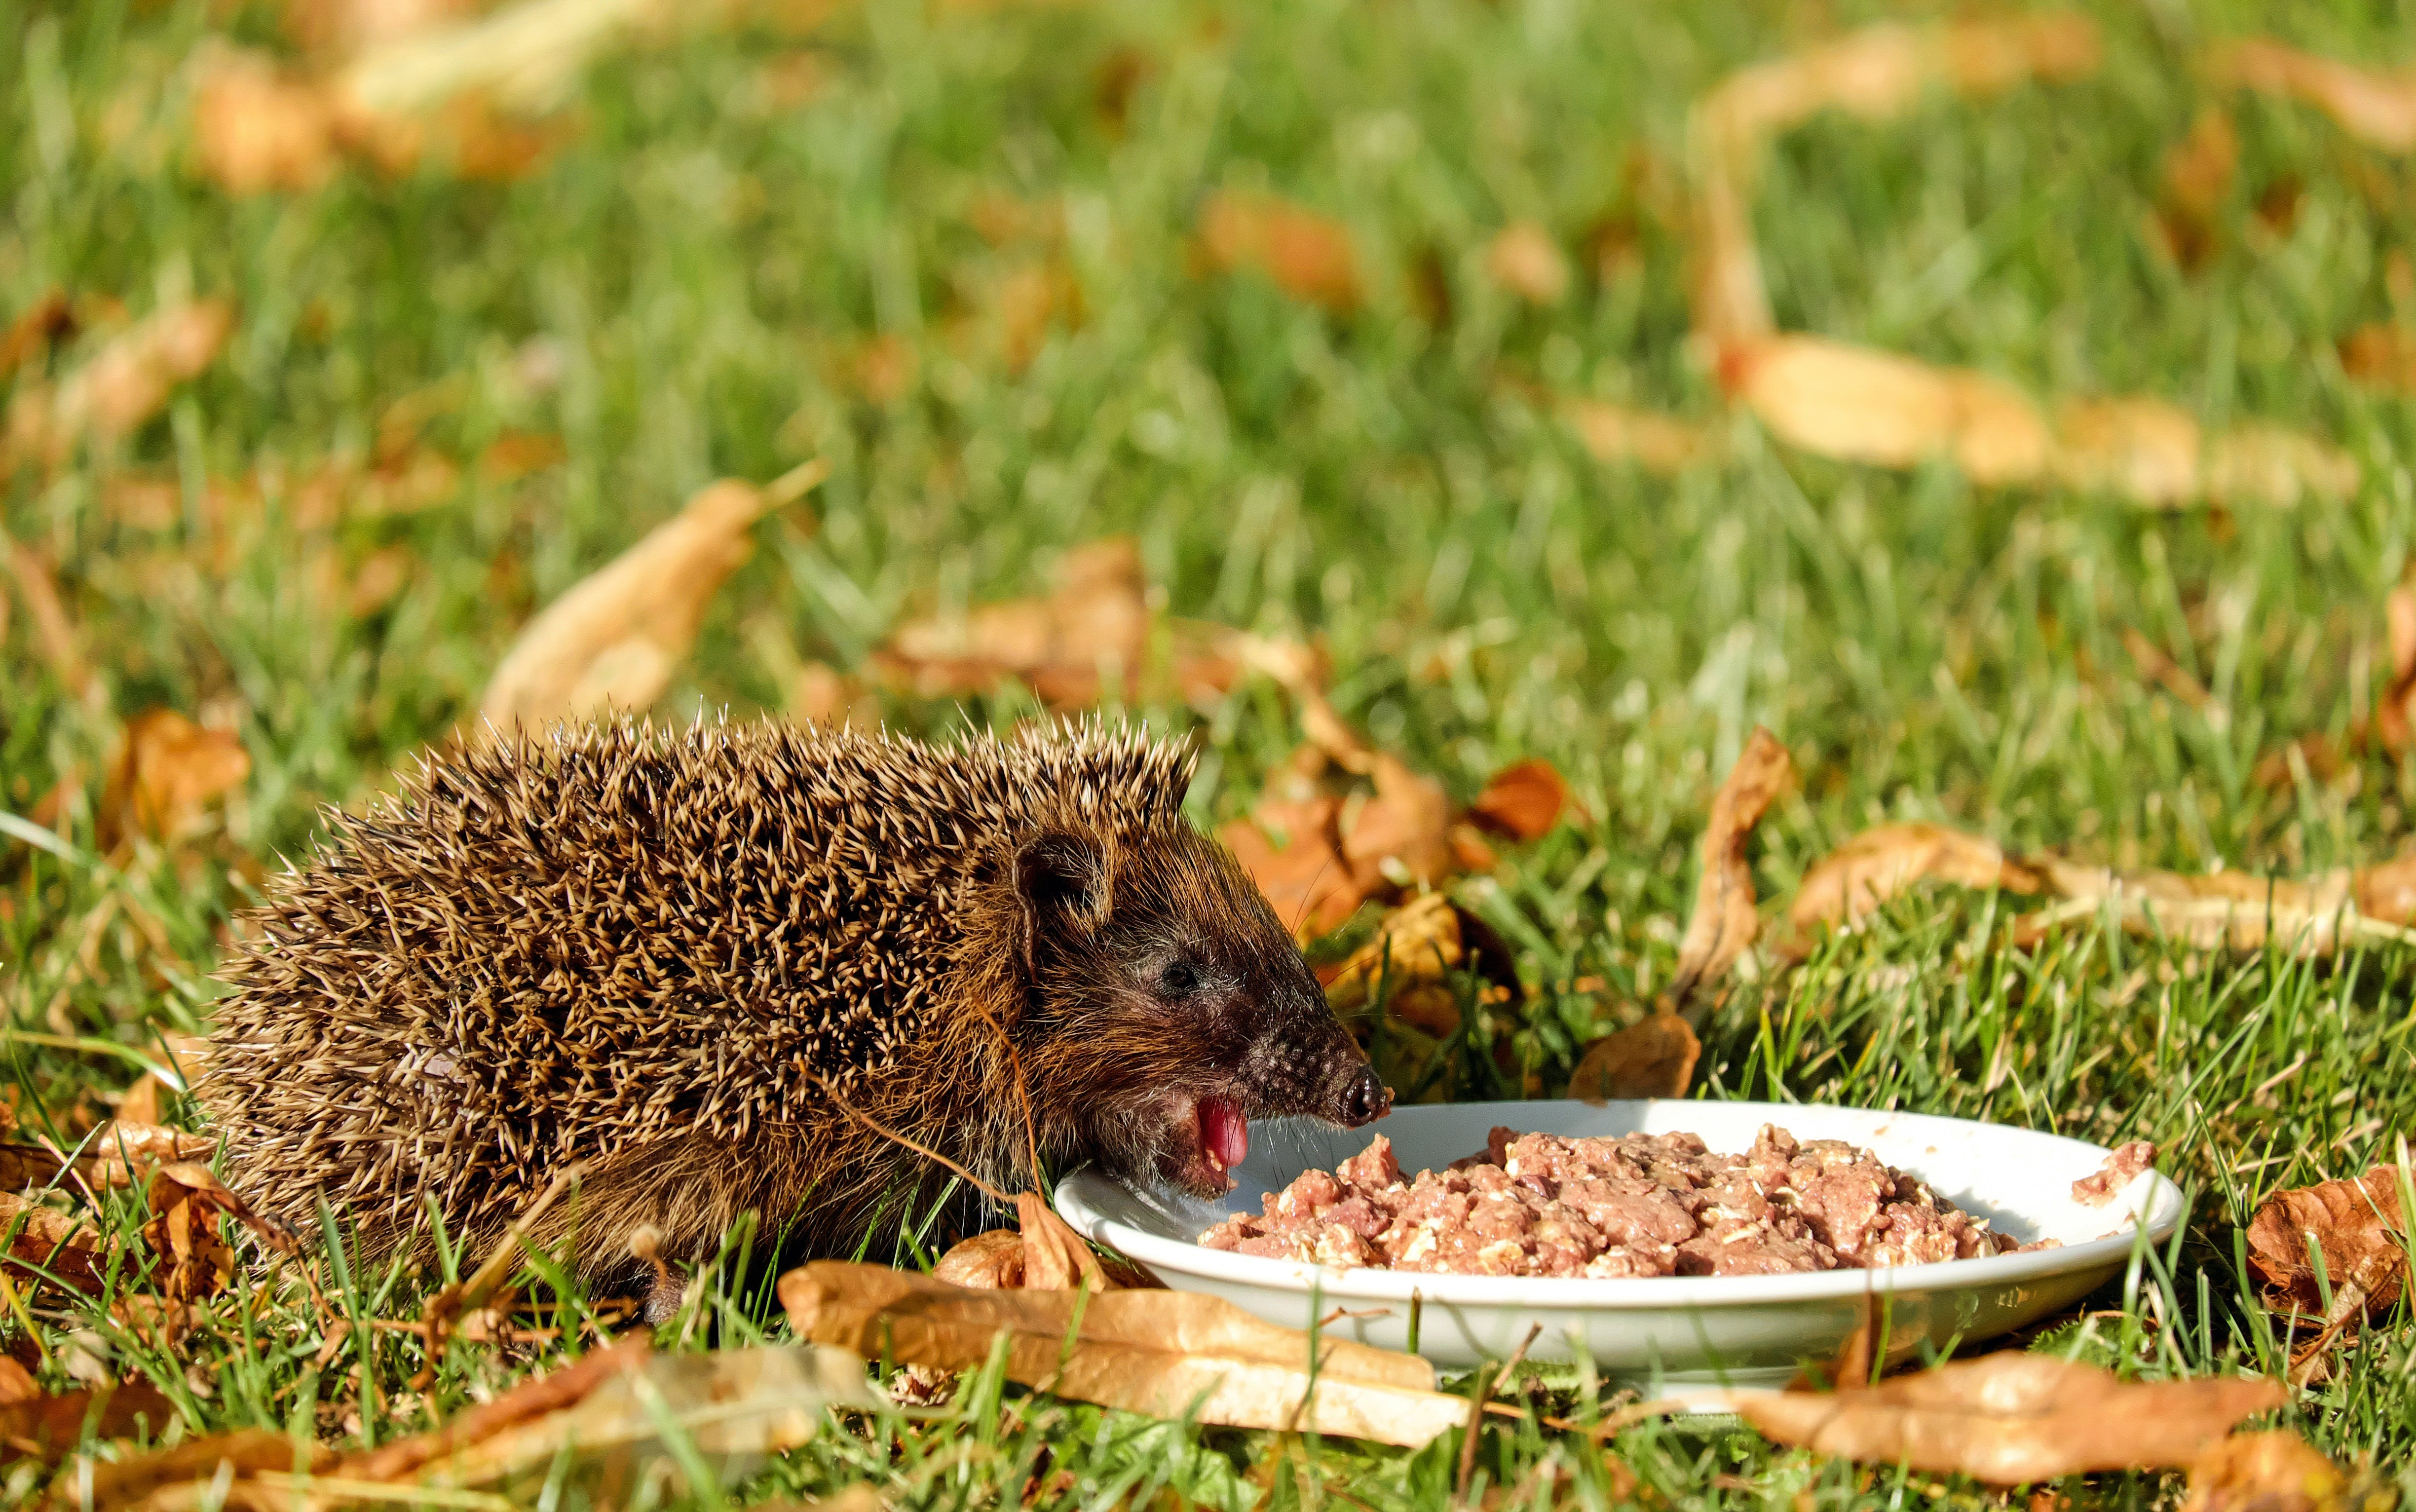 Brown Hedgehod About to Eat on White Ceramic Plate With Brown Dish on Green Grass Field